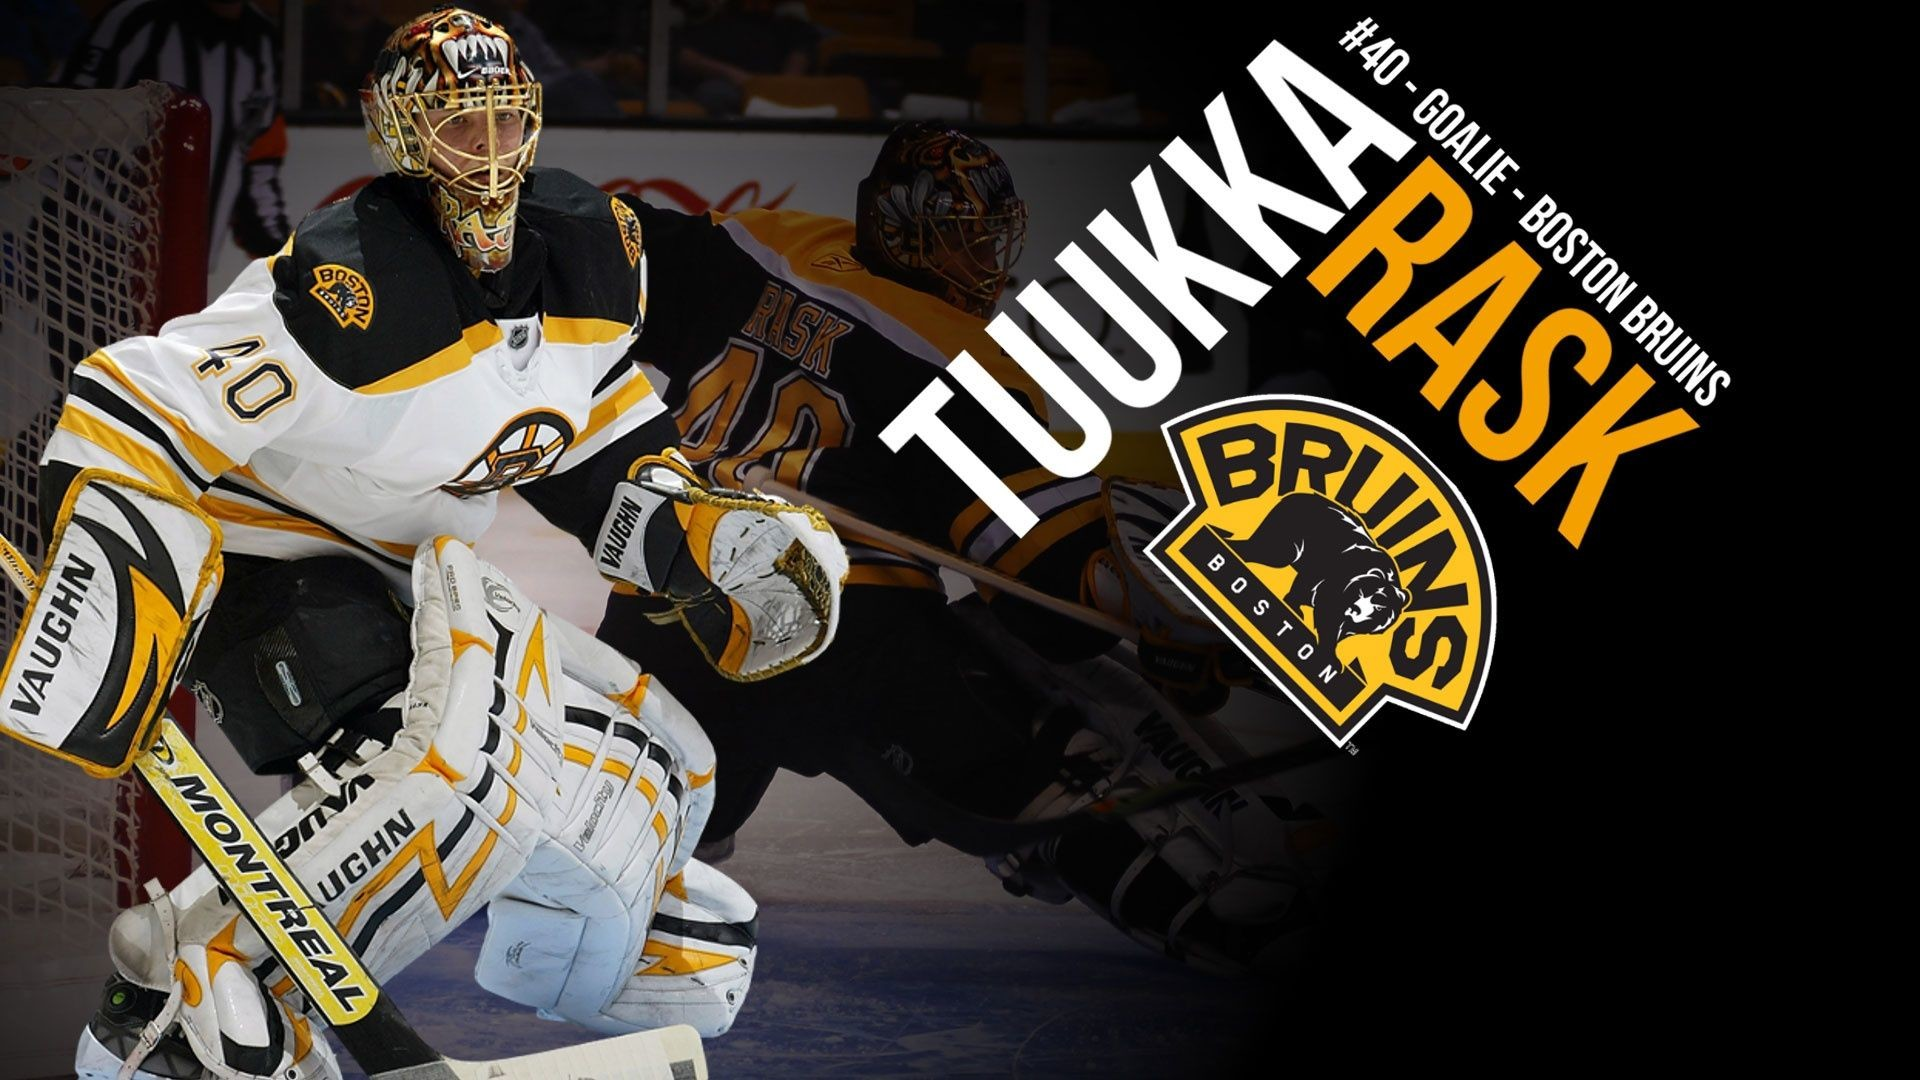 Res: 1920x1080, Tuukka Rask wallpaper